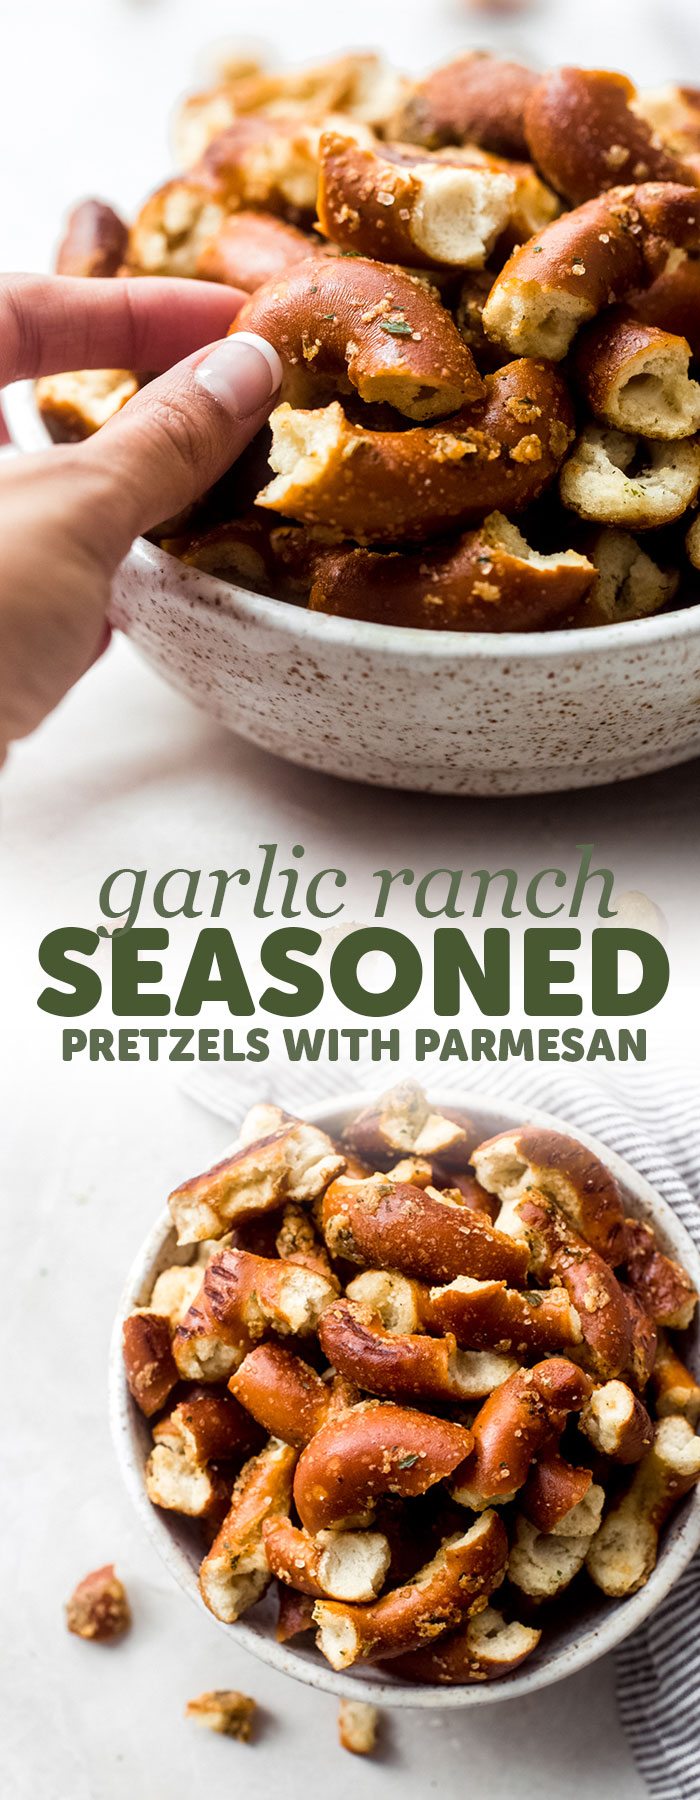 Parmesan Garlic Ranch Seasoned Pretzels - Learn how to make the most addicting parmesan garlic ranch seasoned pretzels. We use large hard pretzels and season them with a garlic ranch butter and bake them until they are crispy and golden! #pretzelpieces #seasonedpretzels #homemadepretzelmix #holiday #christmas | Littlespicejar.com